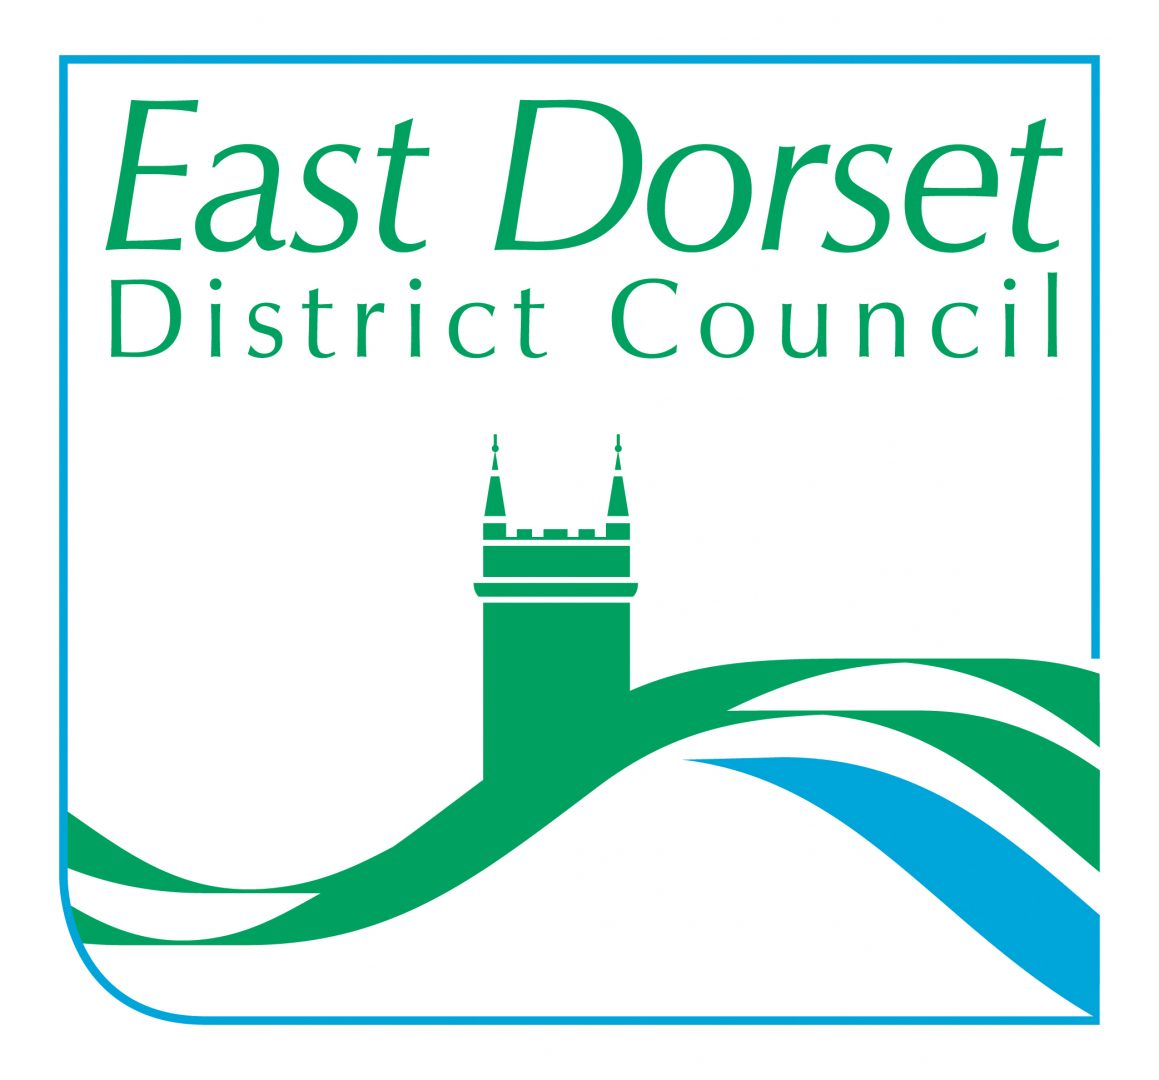 Relocation of East Dorset District Council offices